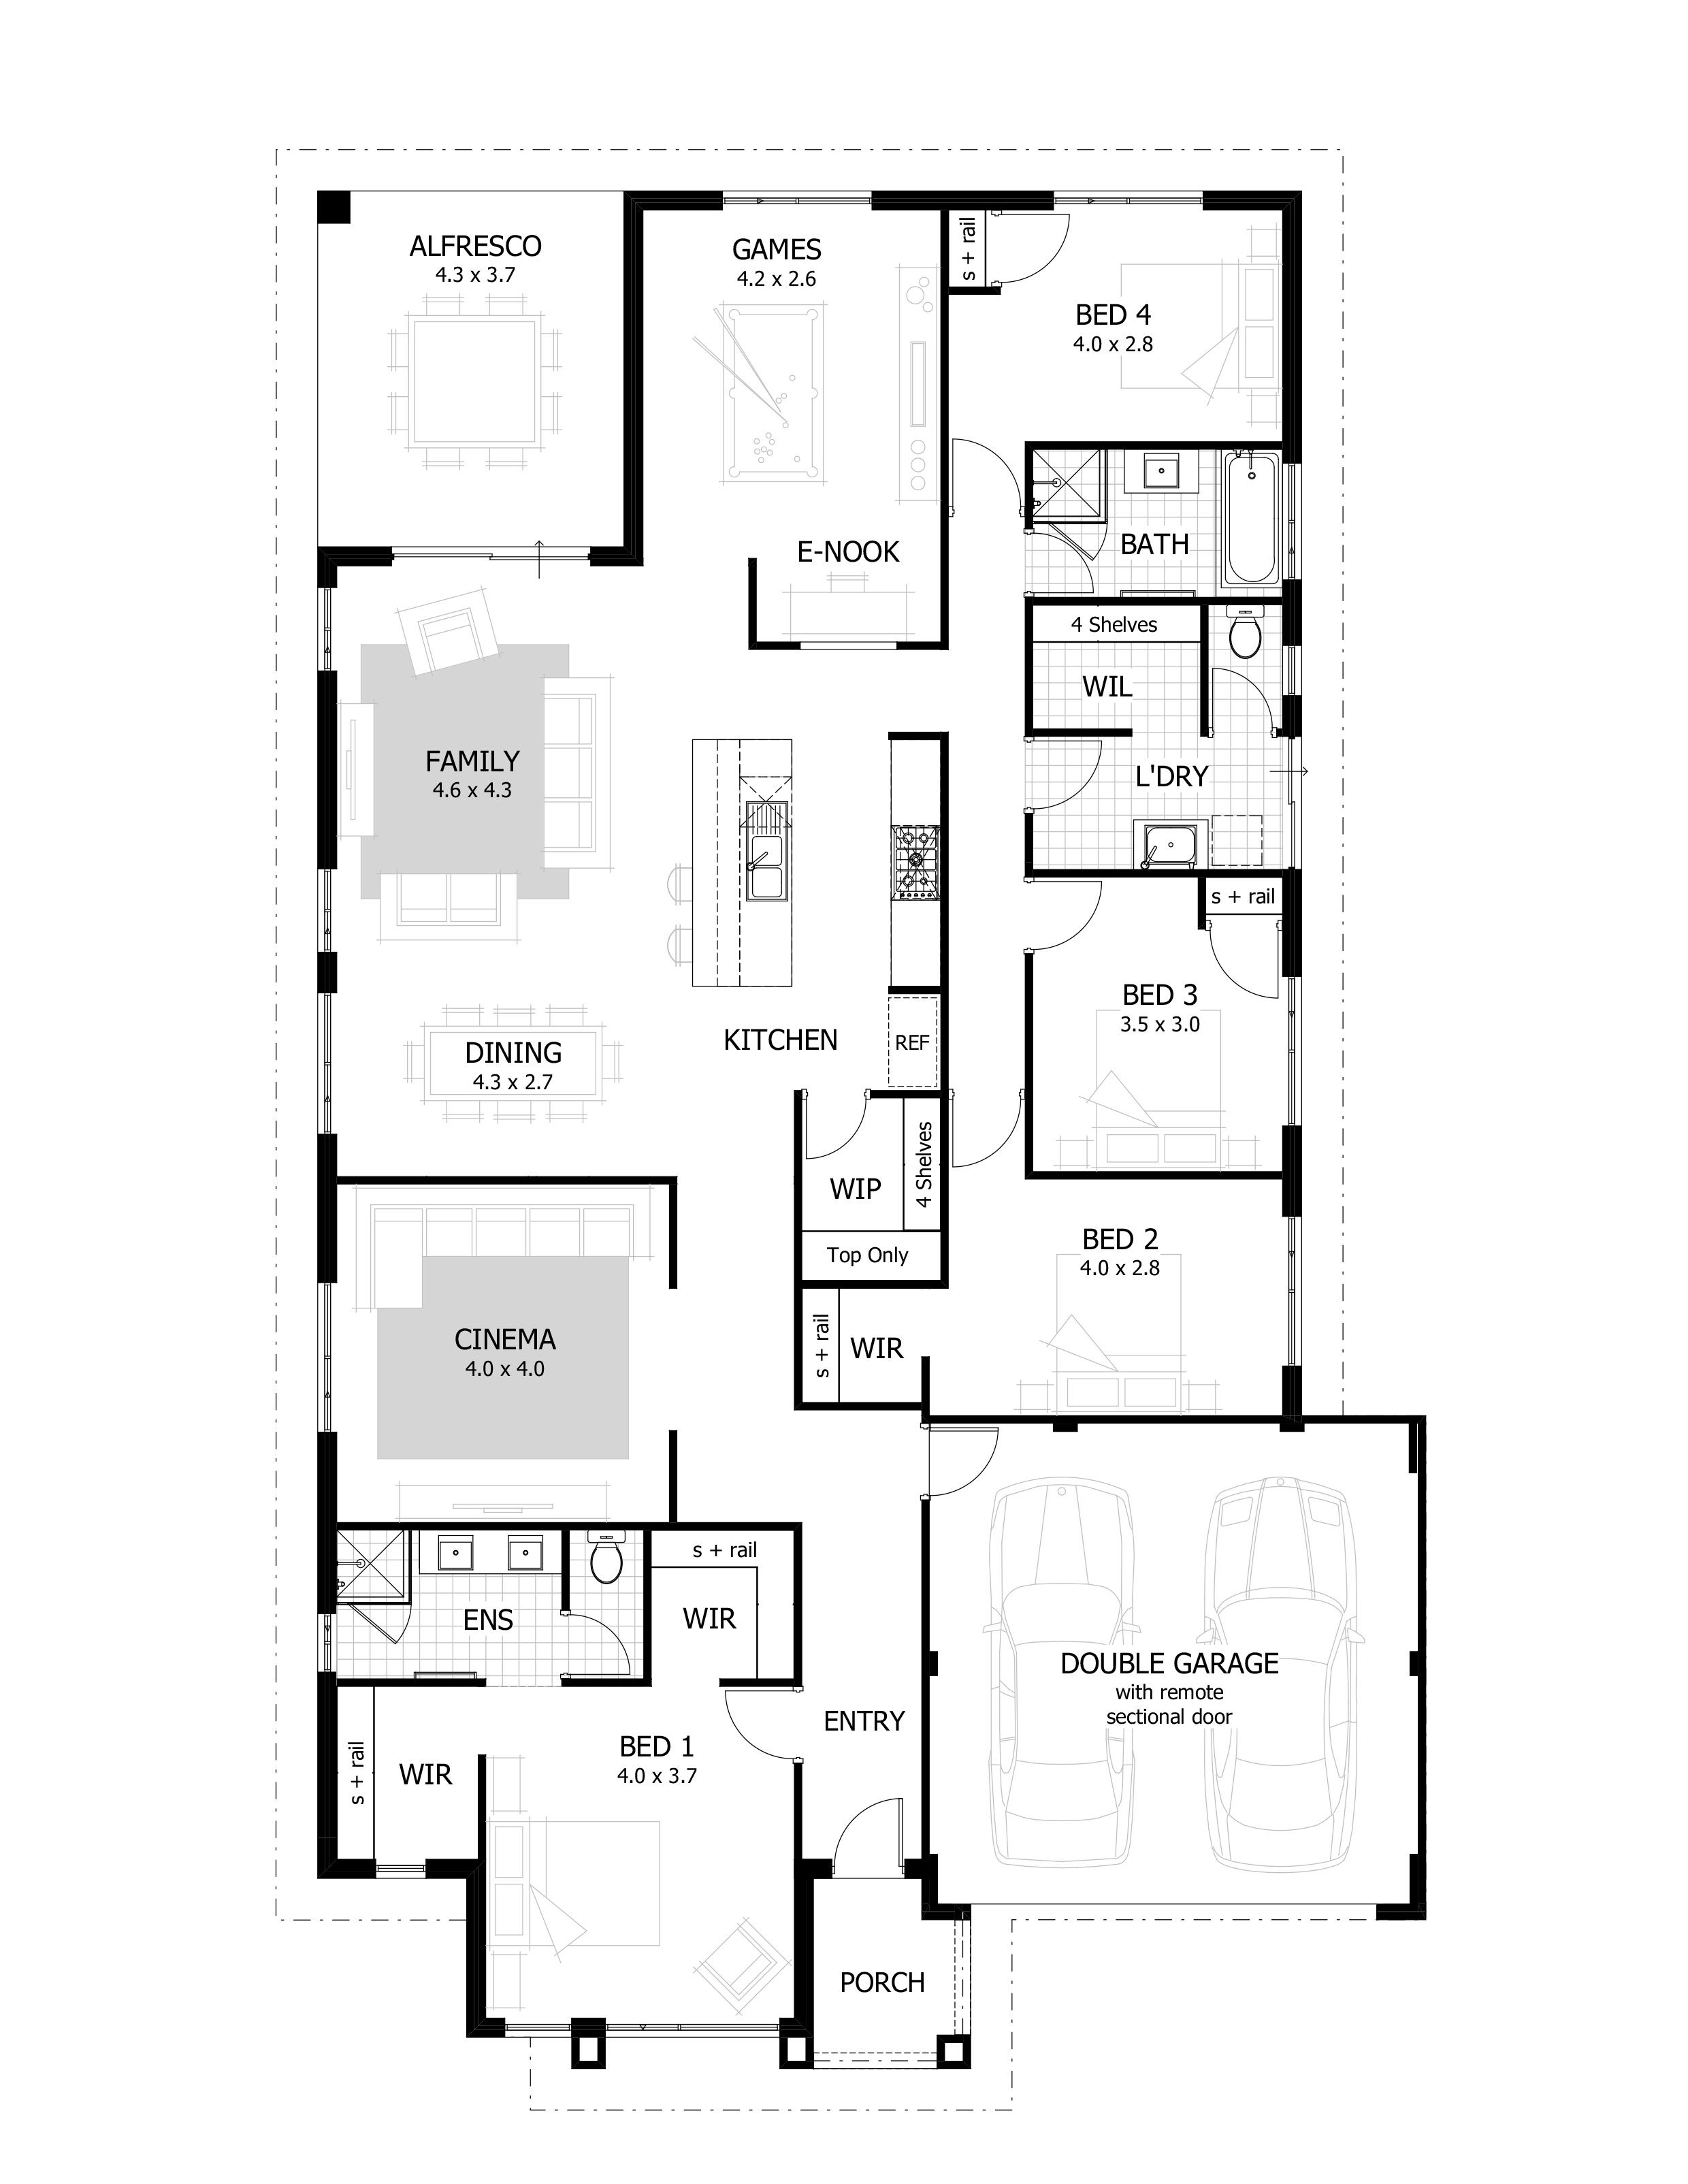 4 Bedroom House Plans   Home Designs   Celebration Homes. 4 Bedroom House Plans   Home Designs   Celebration Homes   house